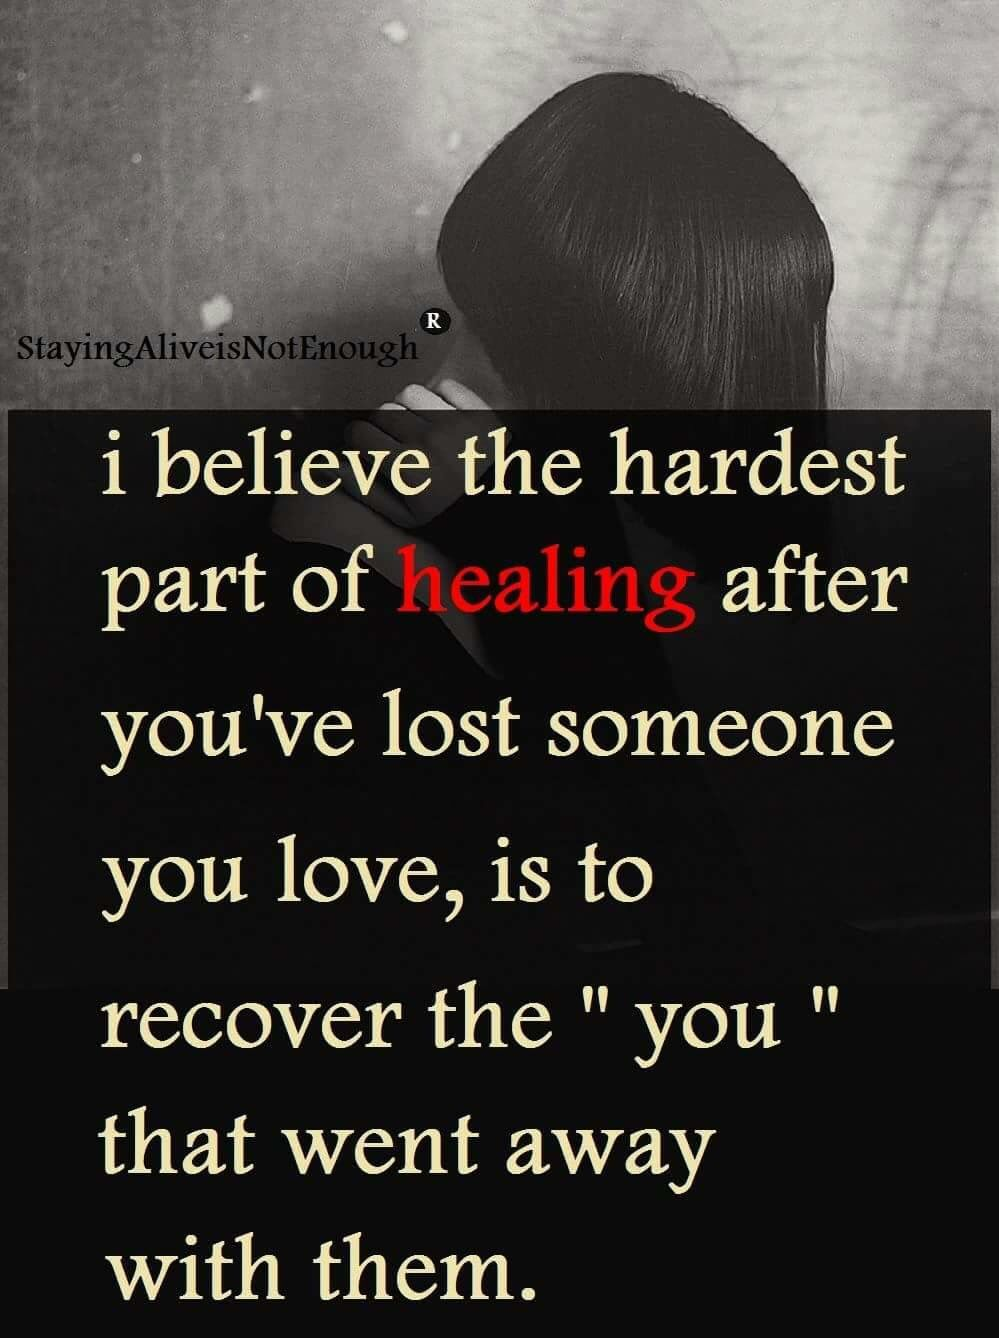 Quotes On The Loss Of A Loved One I Believe The Hardest Part About Healing After The Loss Of A Loved